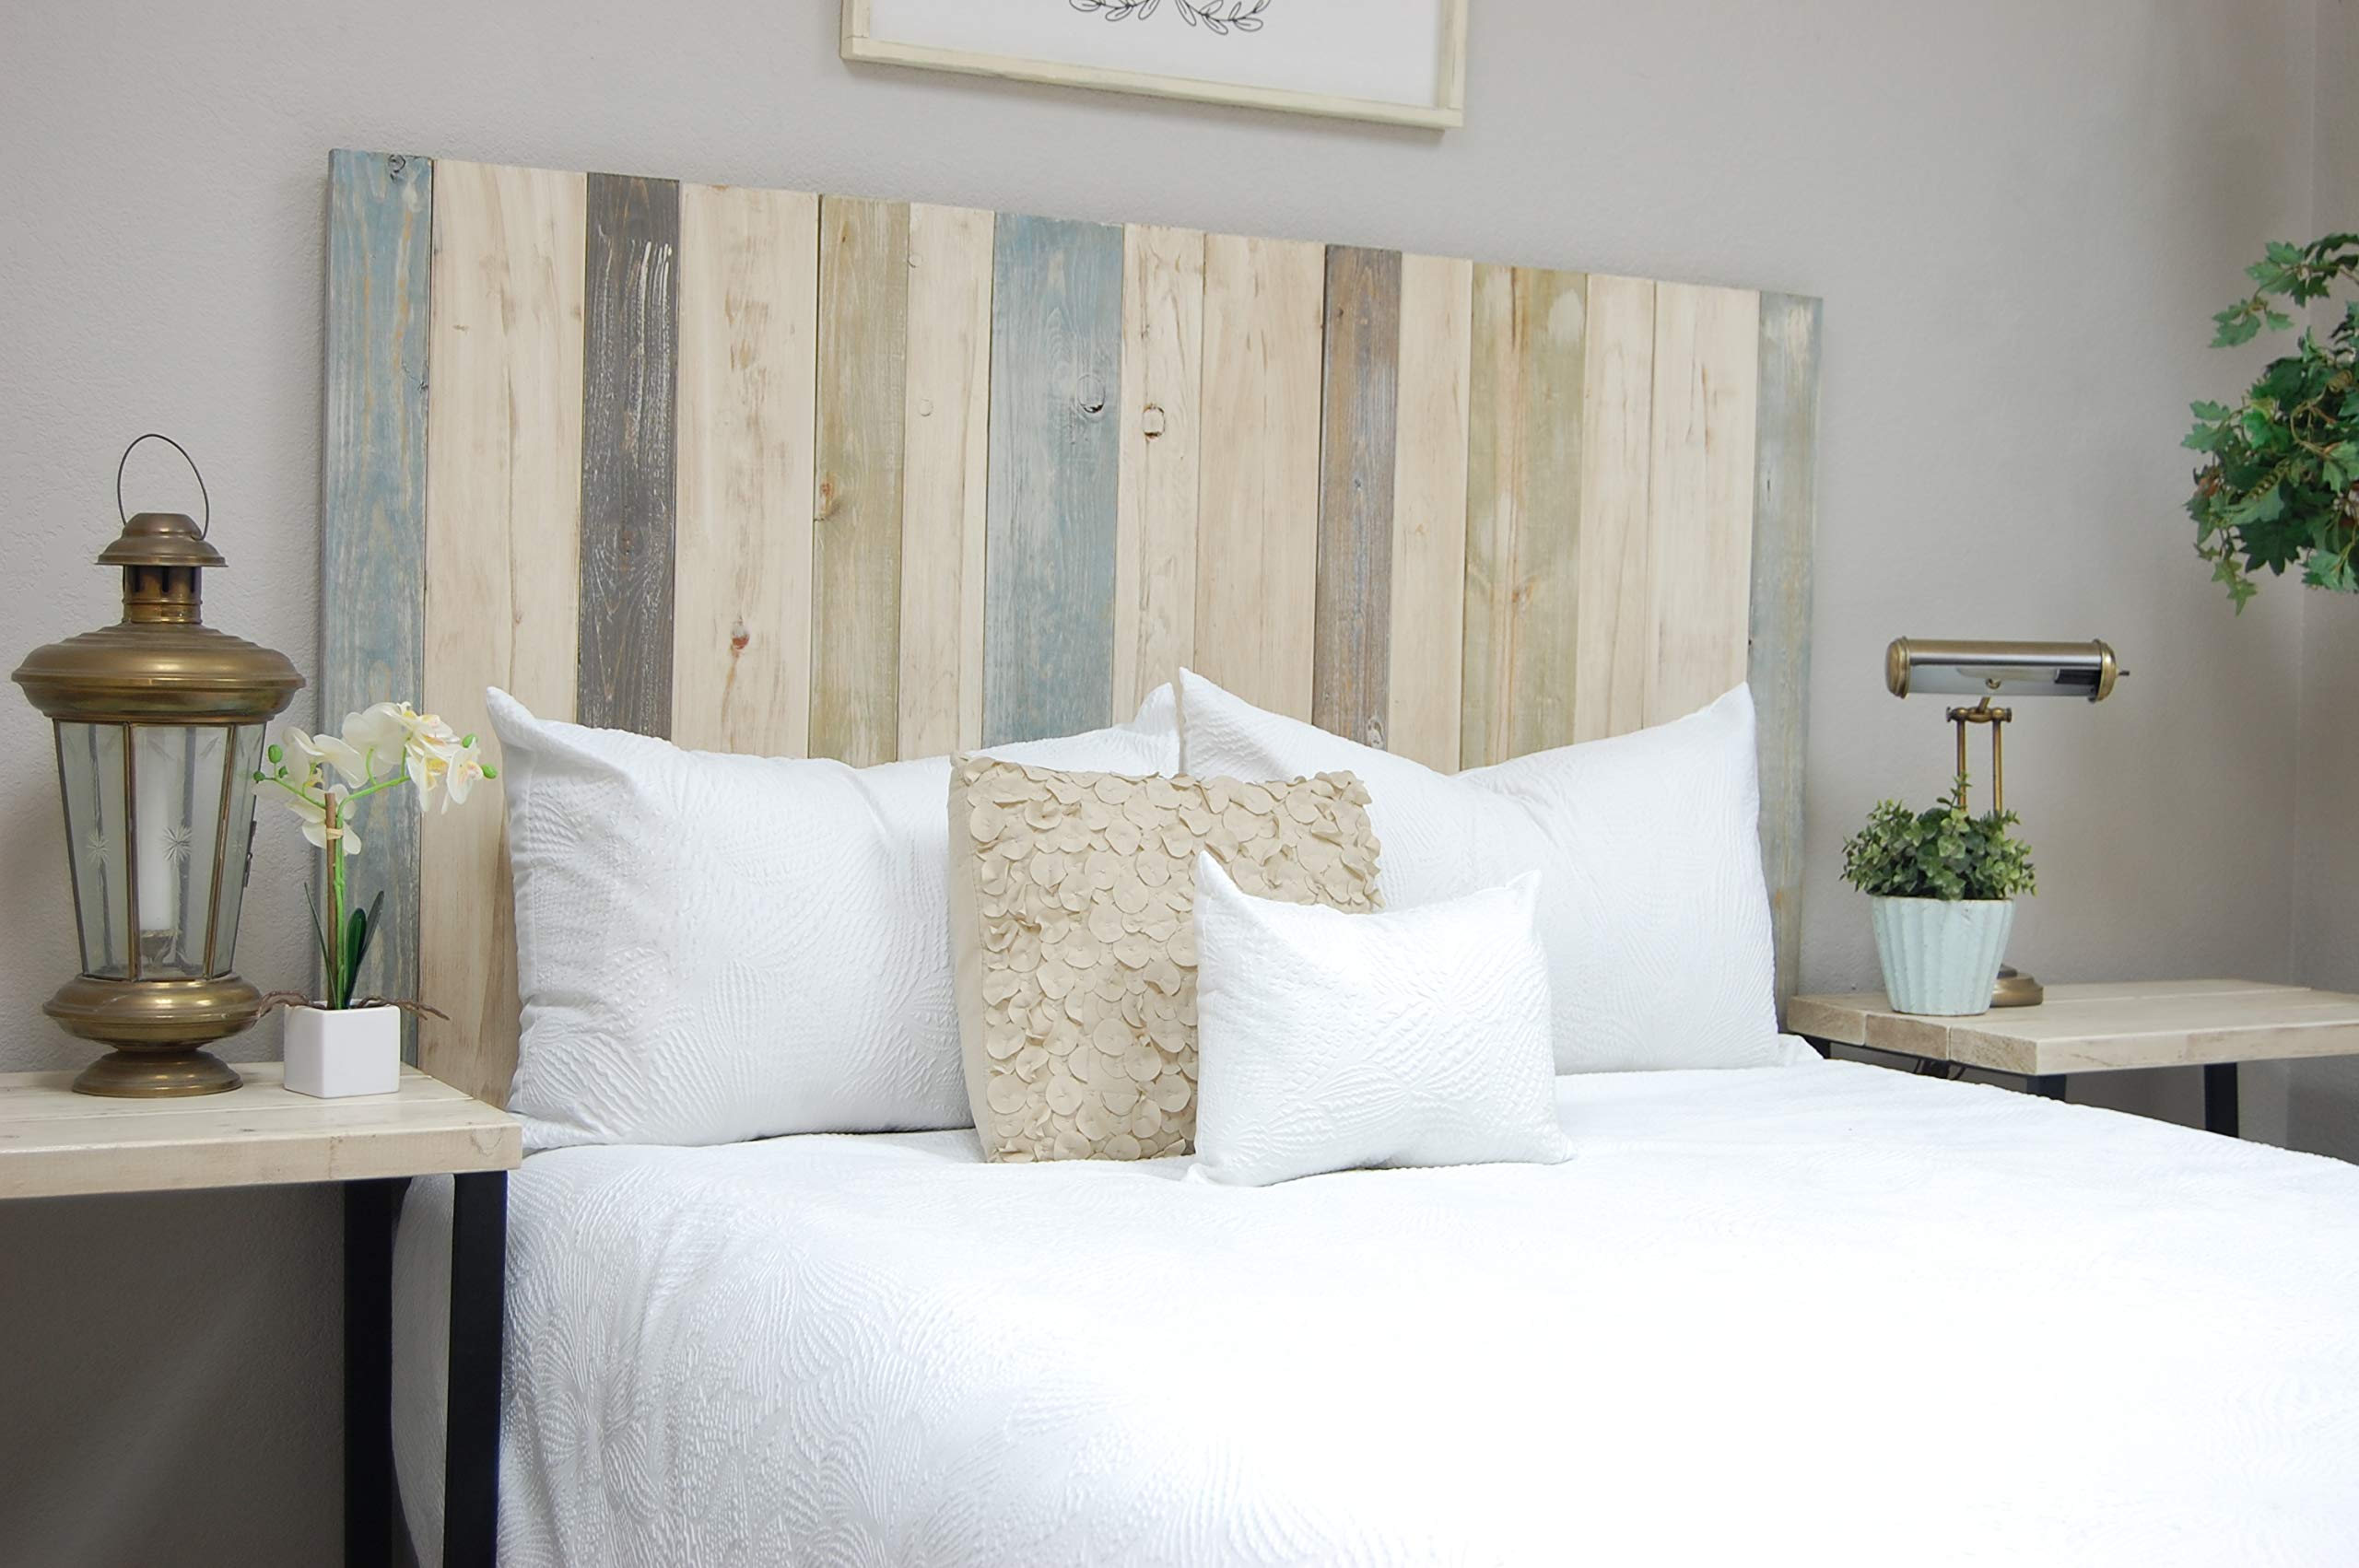 Farmhouse Mix Headboard Queen Size, Hanger Style, Handcrafted. Mounts on Wall. Easy Installation